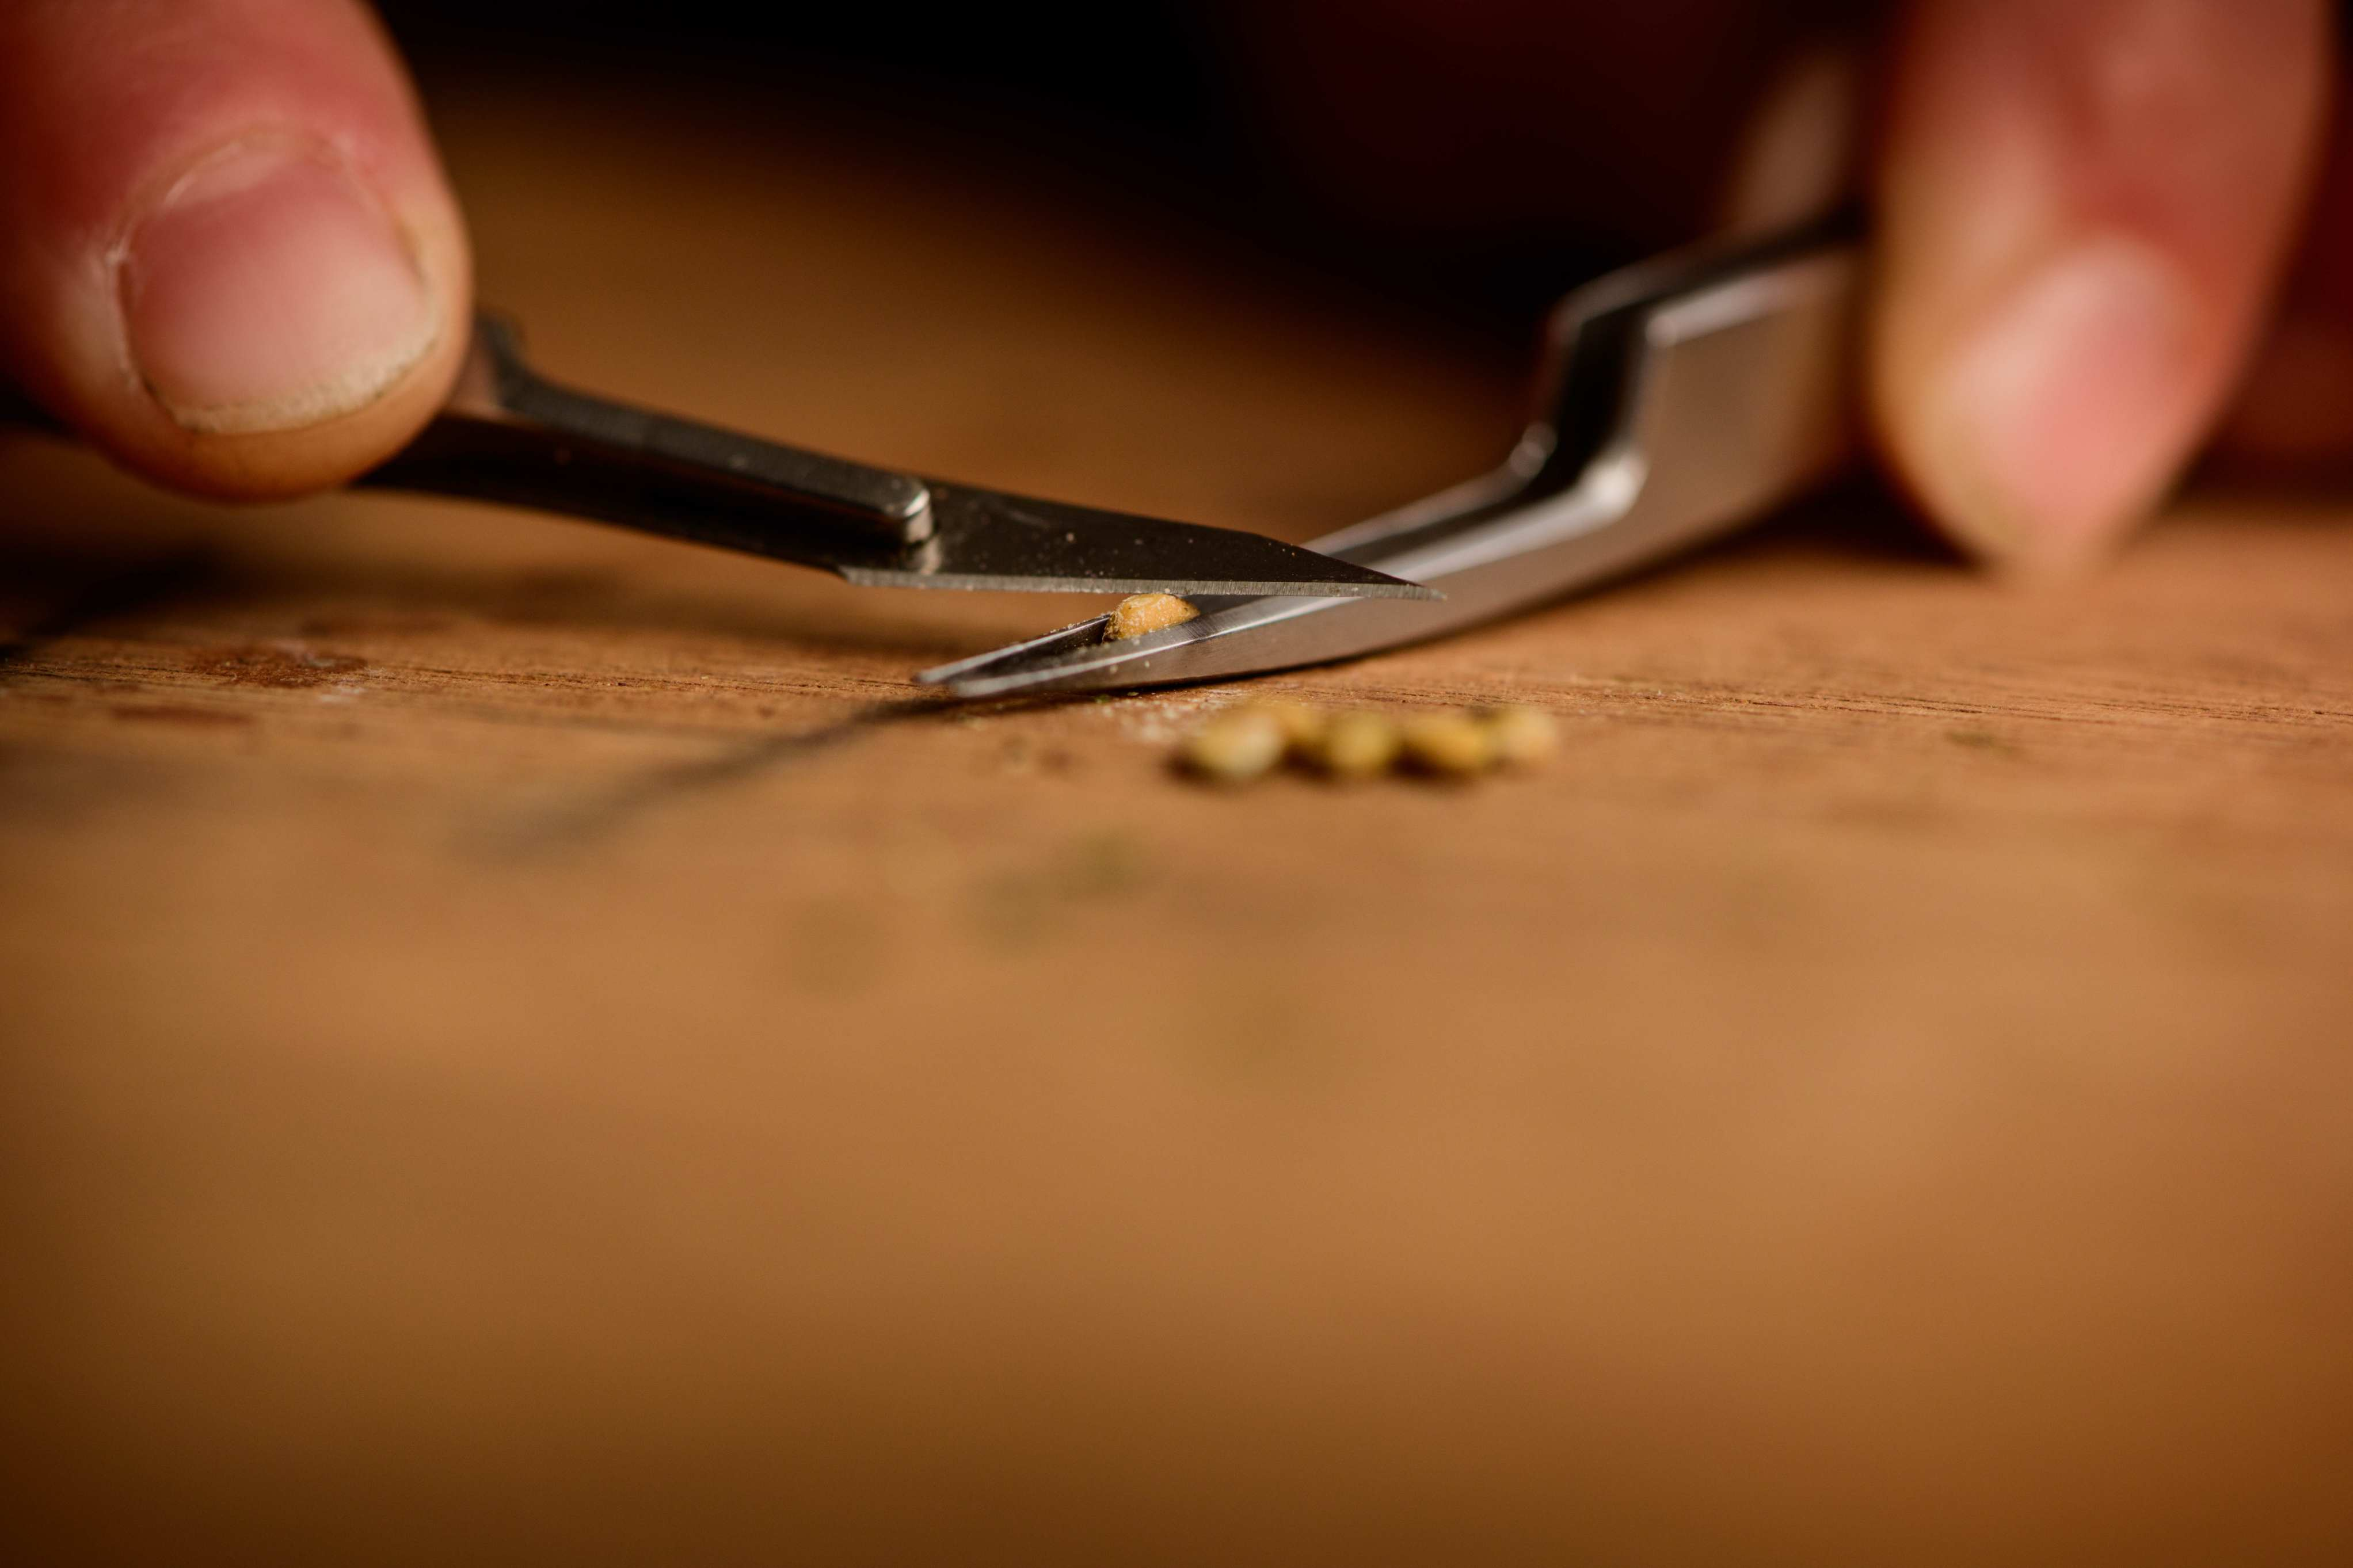 Close up of tweezers and scalpel chipping the hard coat of a seed to encourage germination